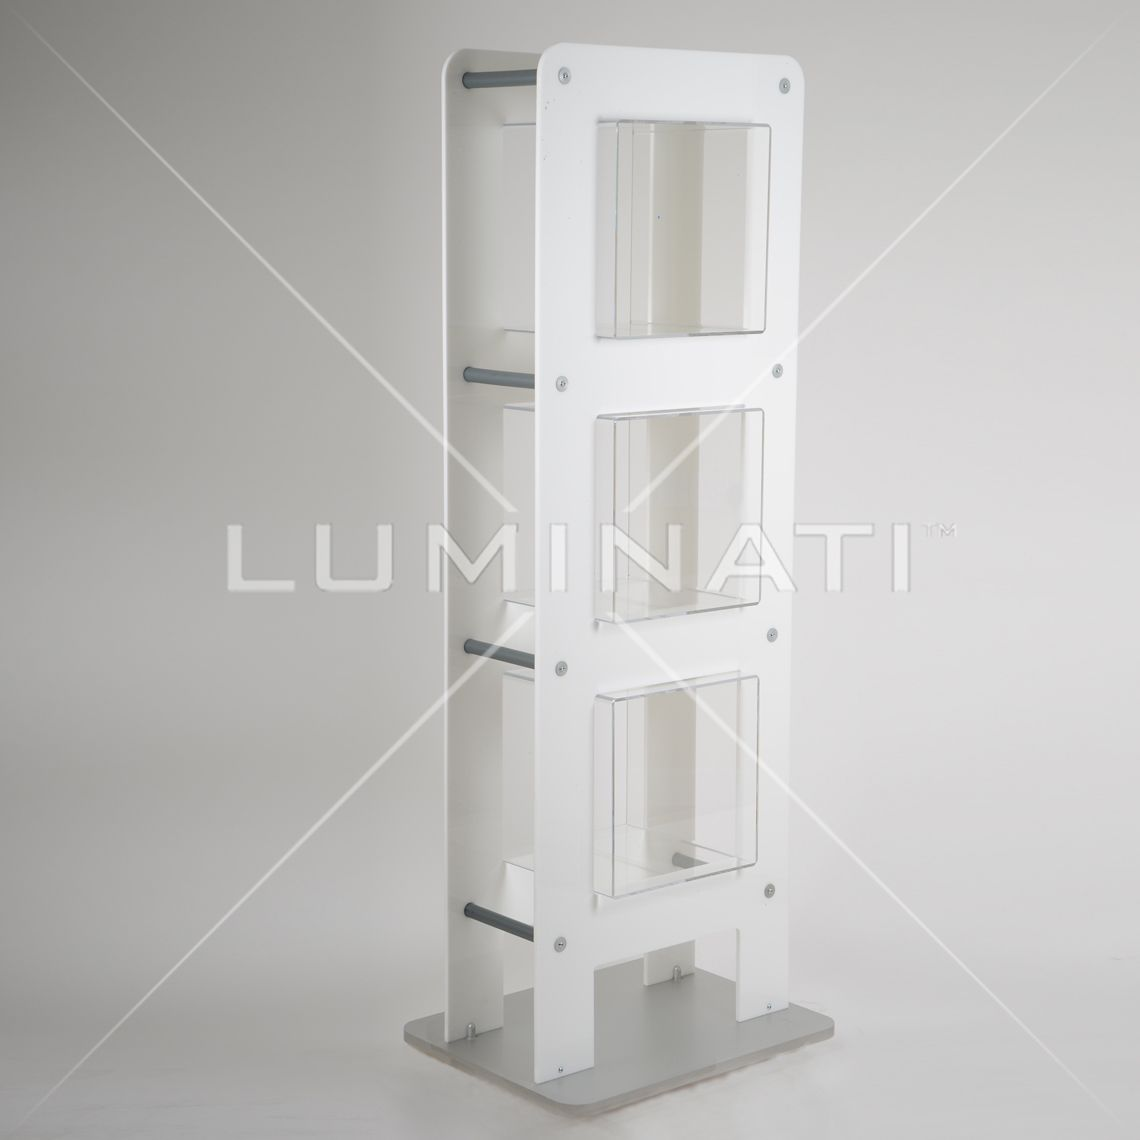 Exhibition Stand Shelves : Exhibition stand concept with billboards shelves booths displays